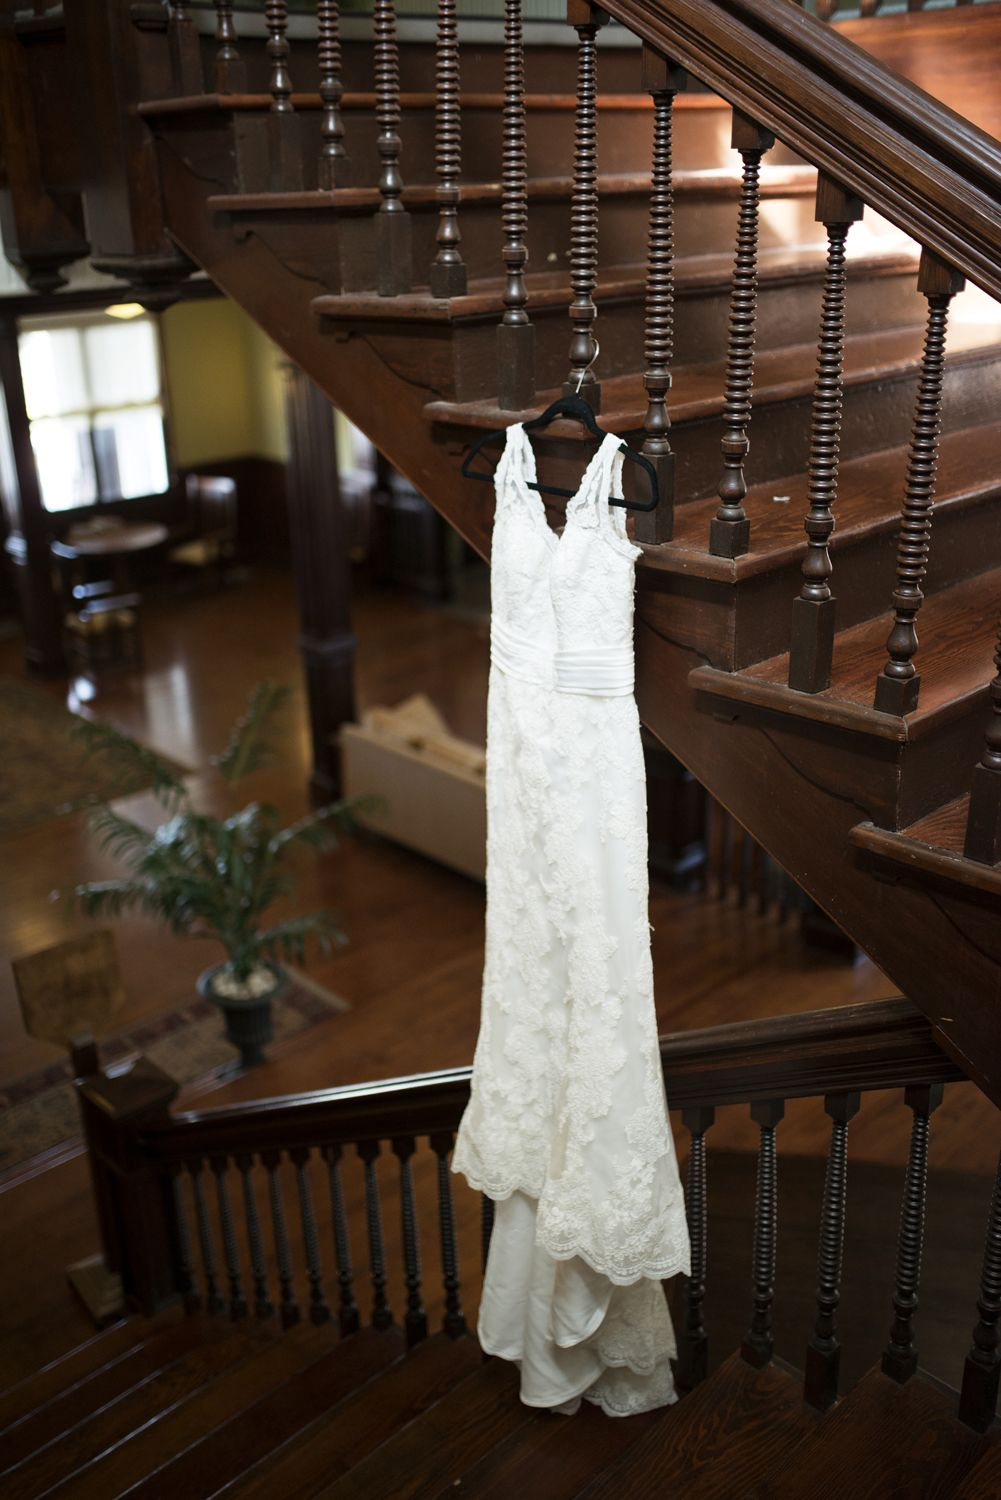 Lace wedding dress on a beautiful wooden staricase